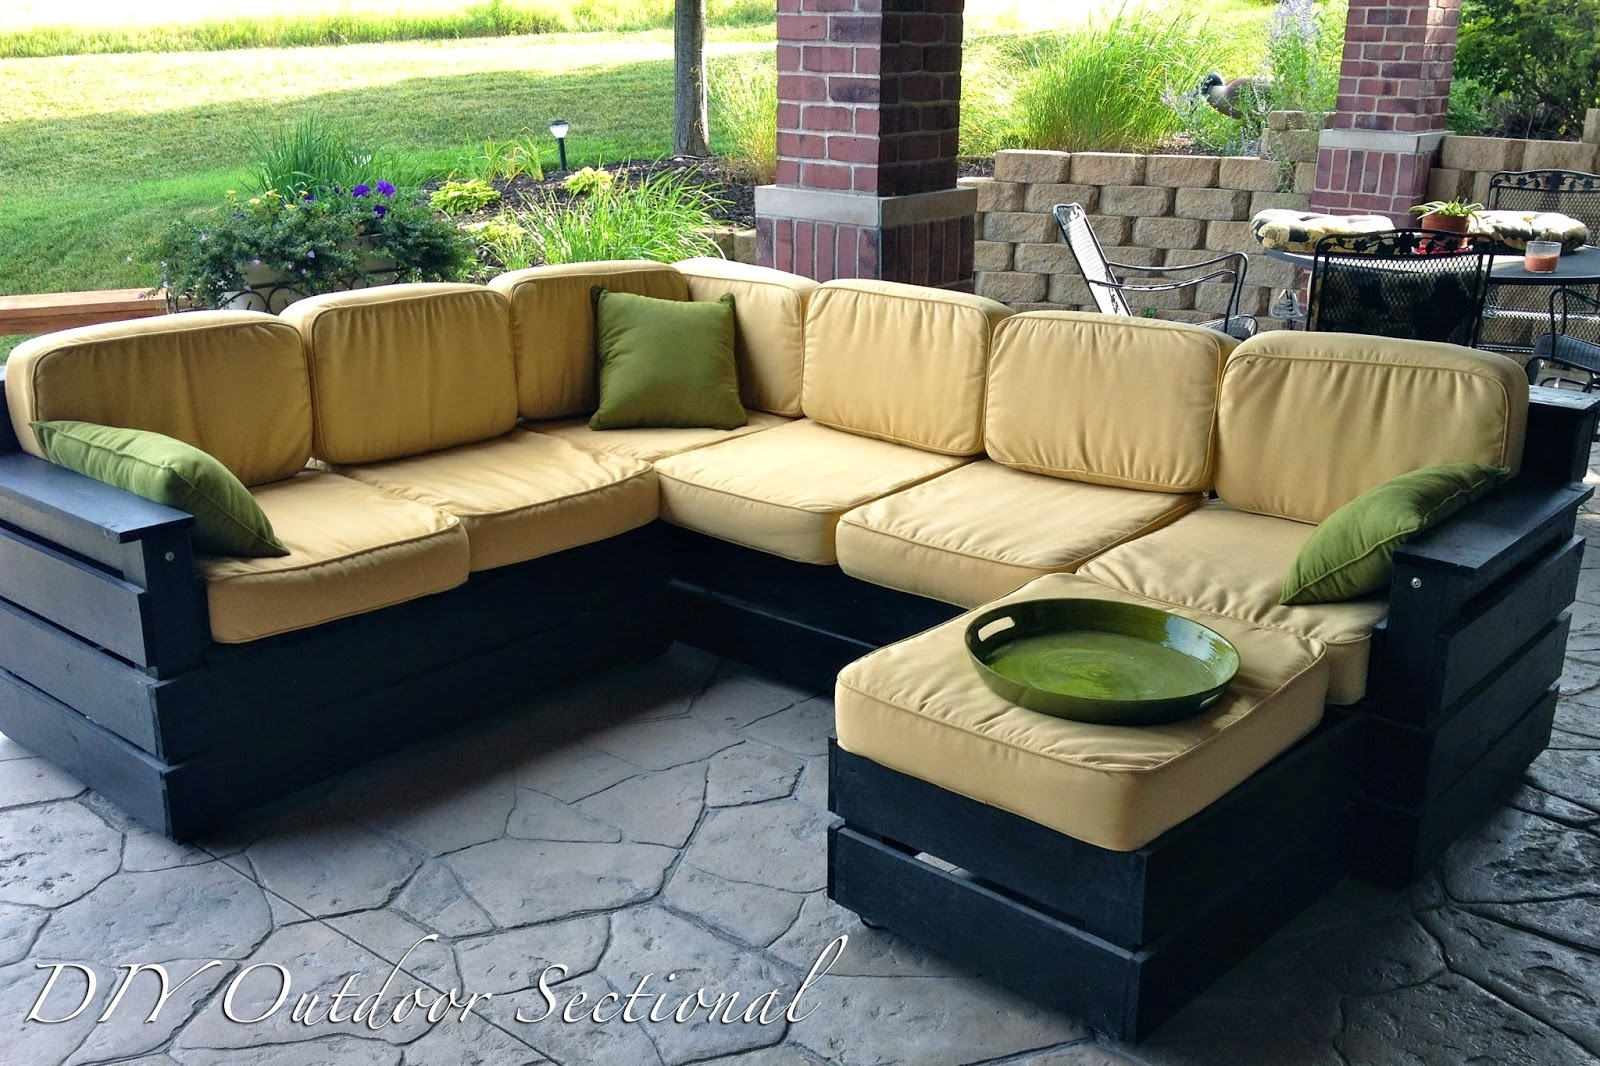 Diy Outdoor Sectional Build It Yourself Out Of Regular Wood From Pertaining To Diy Sectional Sofa (Image 8 of 15)